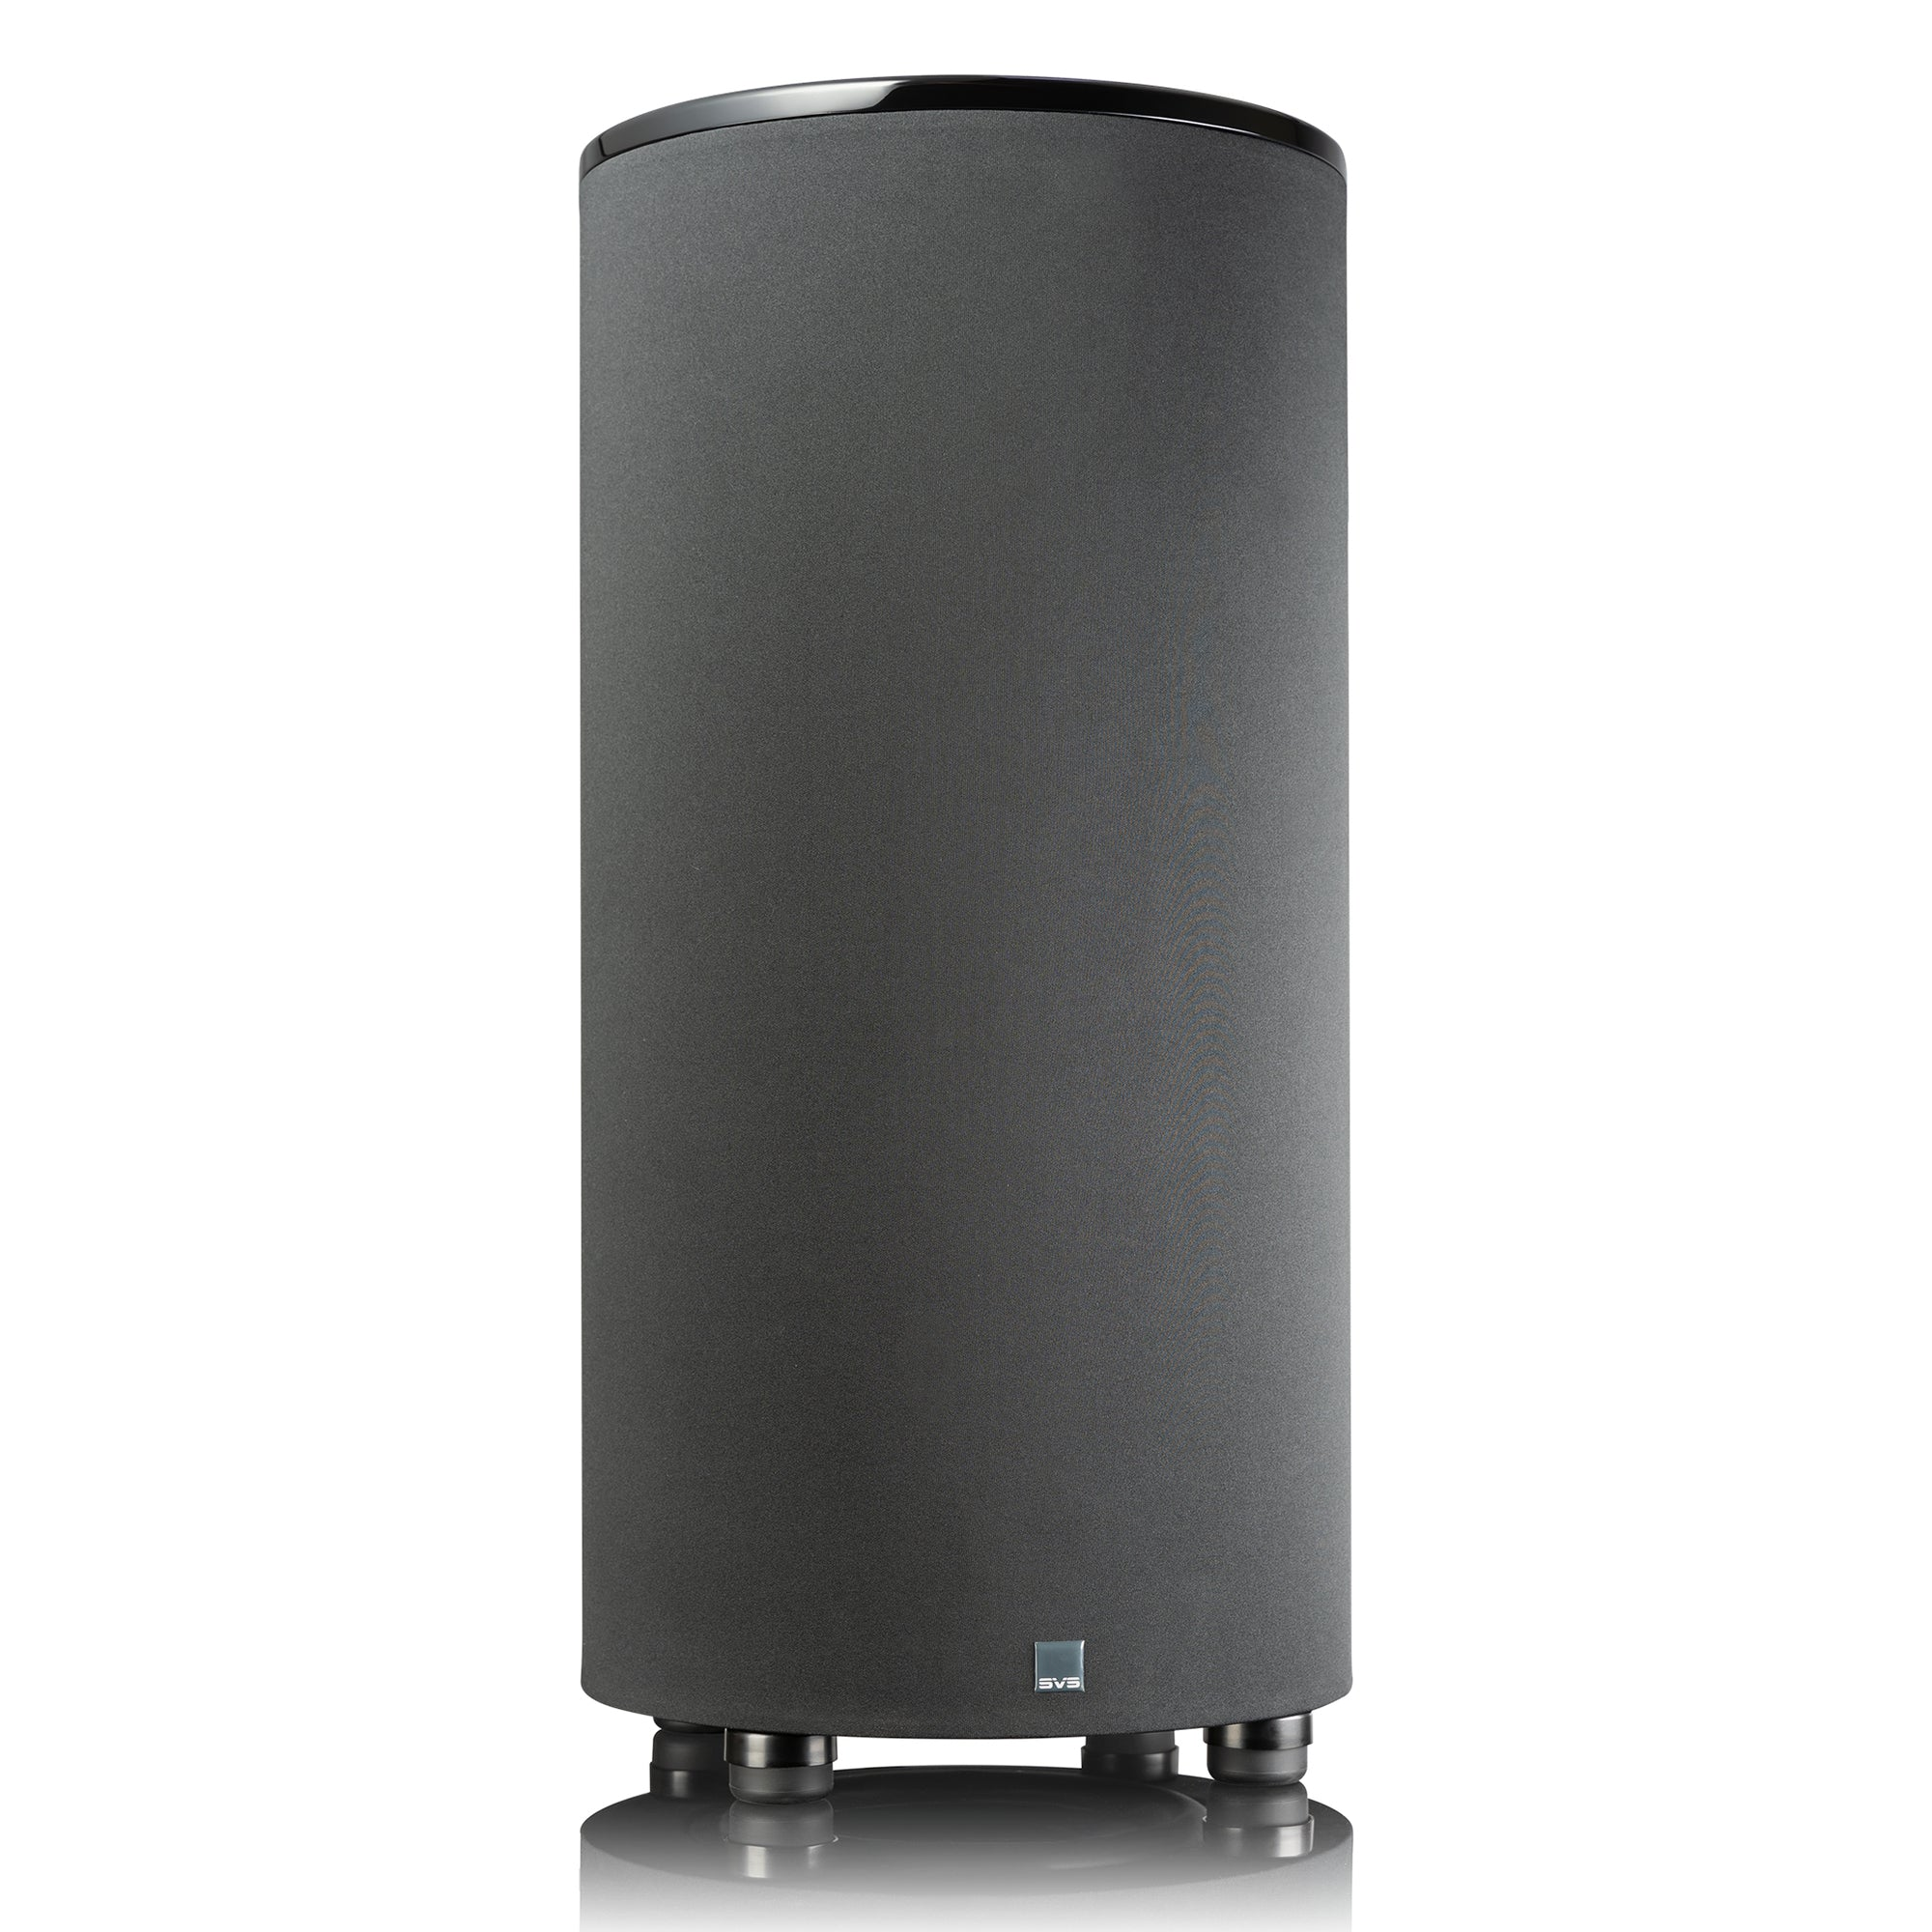 SVS PC-2000 Pro Series Ported Cylinder Home Subwoofer